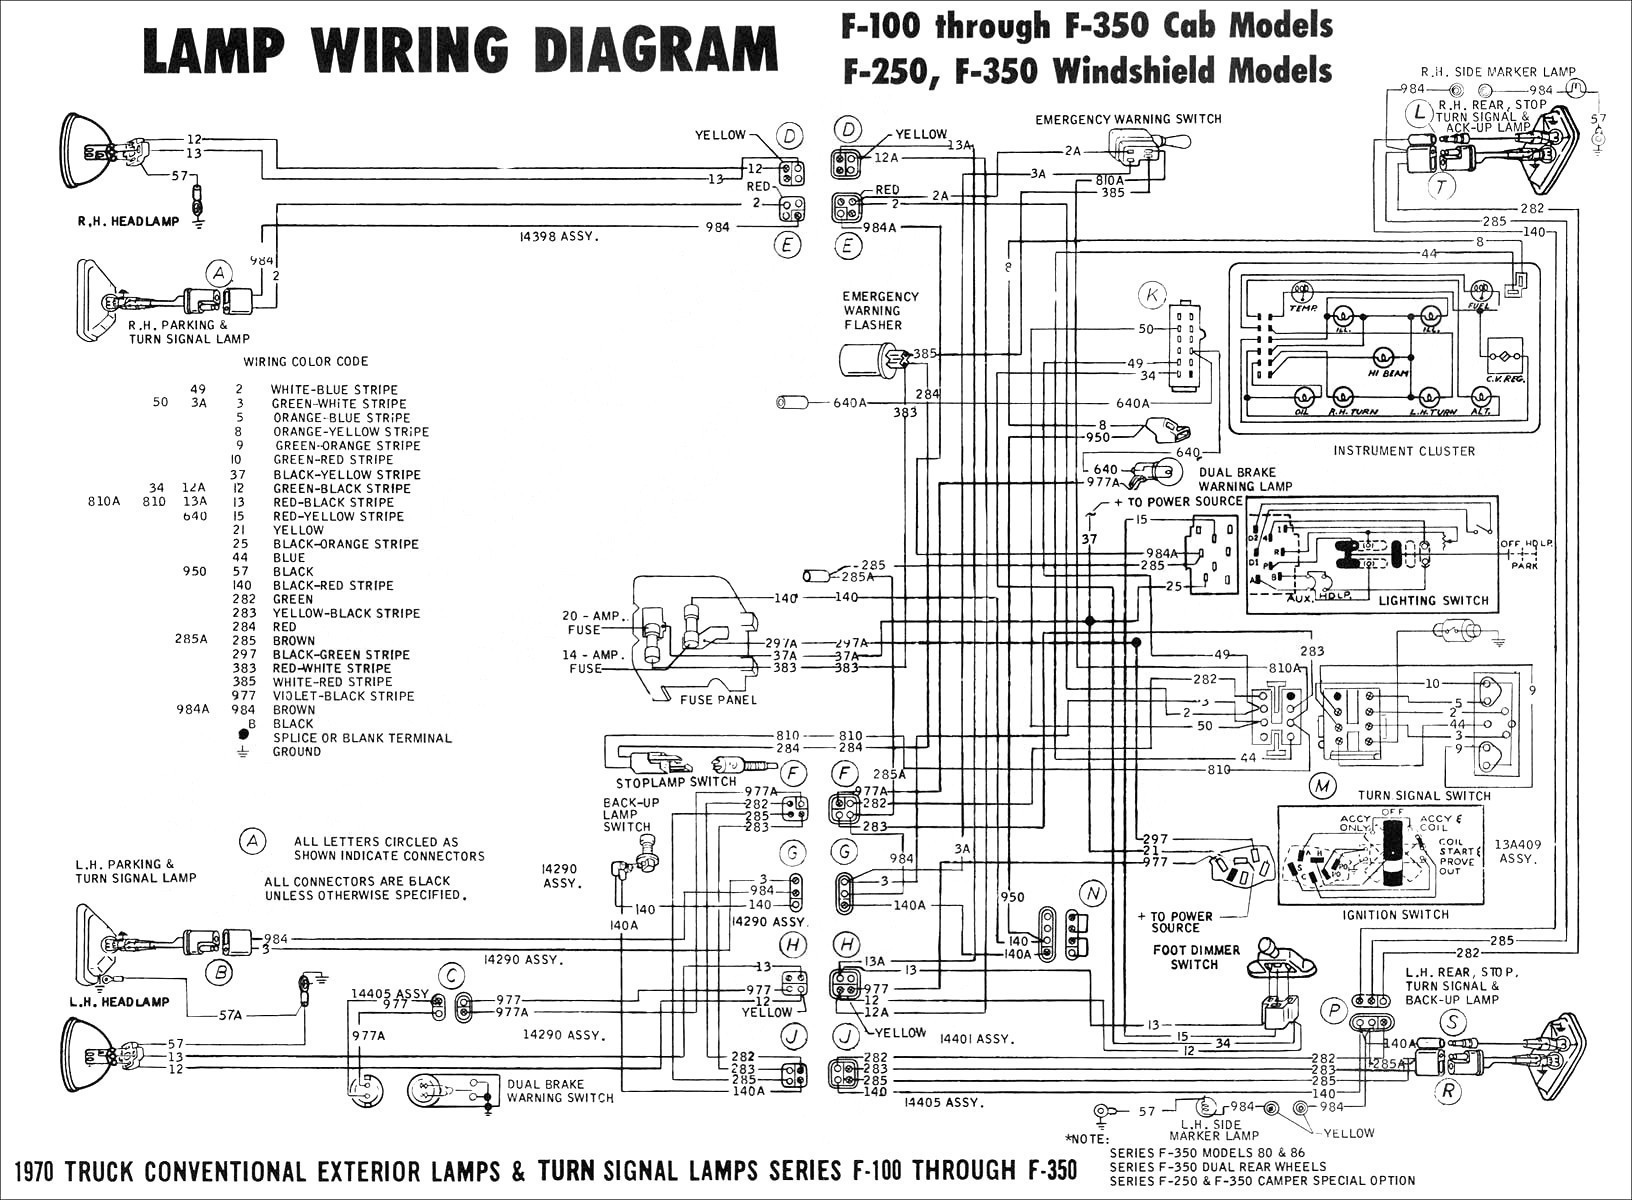 2006 Tacoma Wiring Diagram Detailed Wiring Diagrams 2002 Toyota Tundra Fuse  Box Diagram 2007 Toyota Tacoma Fuse Diagram